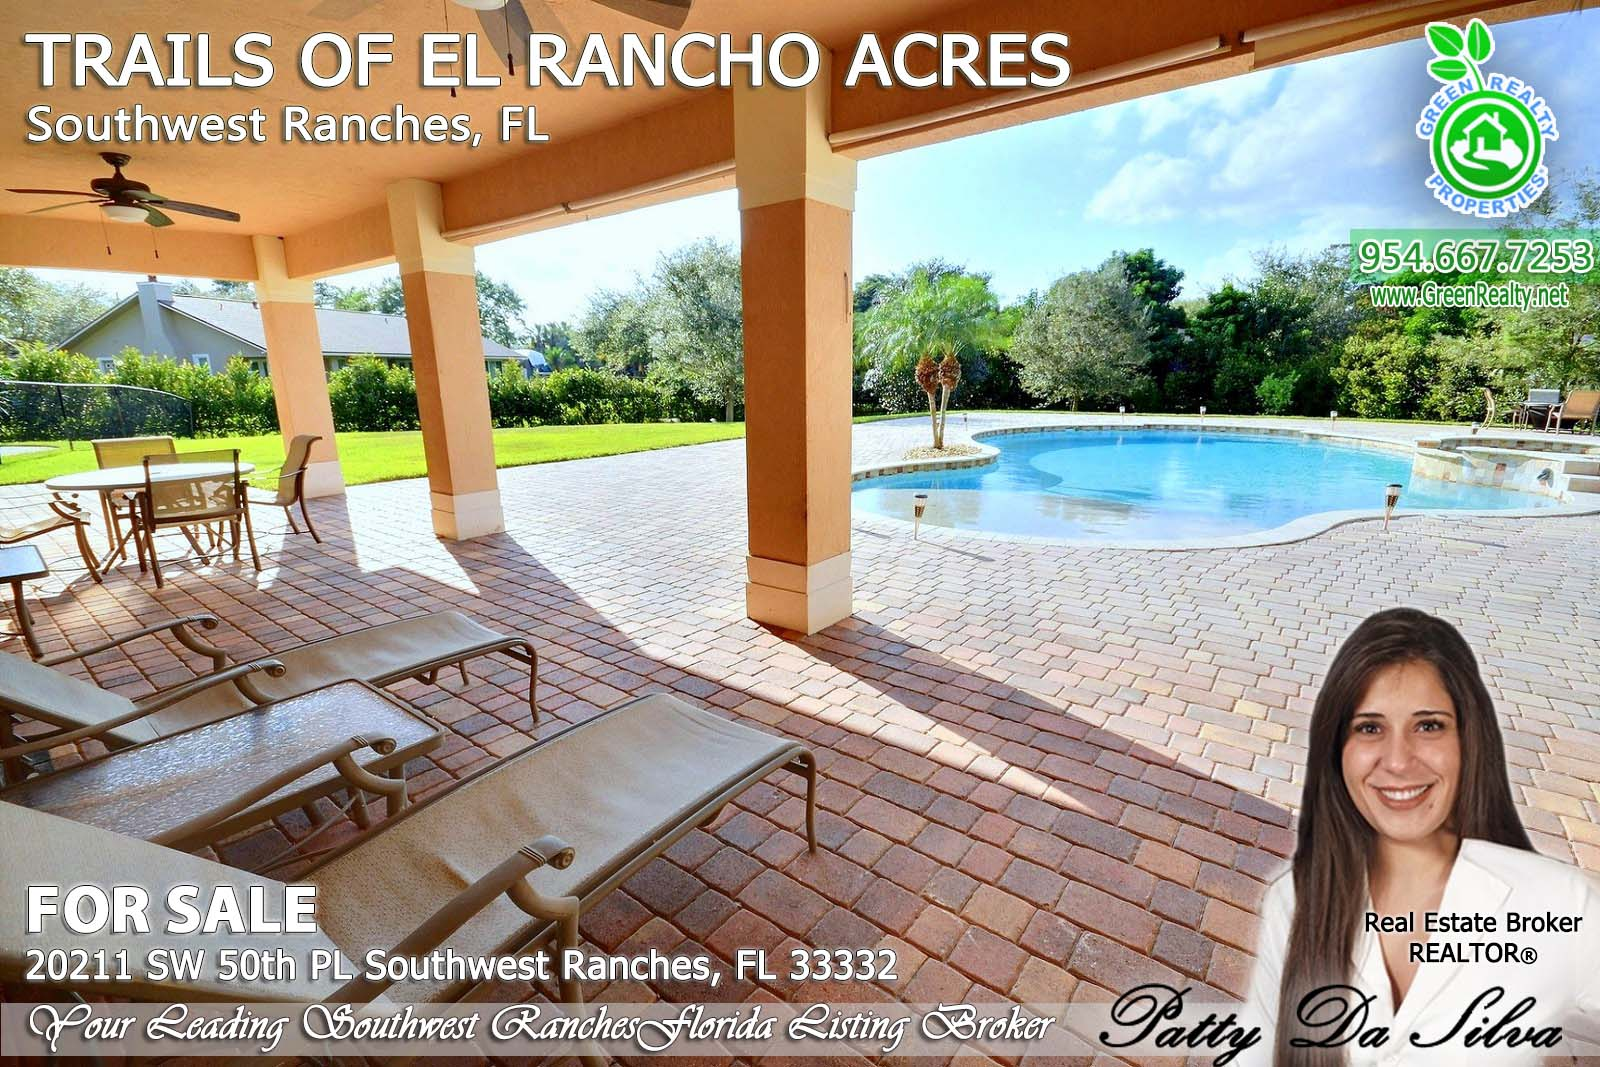 20211 SW 50th PL, Southwest Ranches, FL 33332 (58)